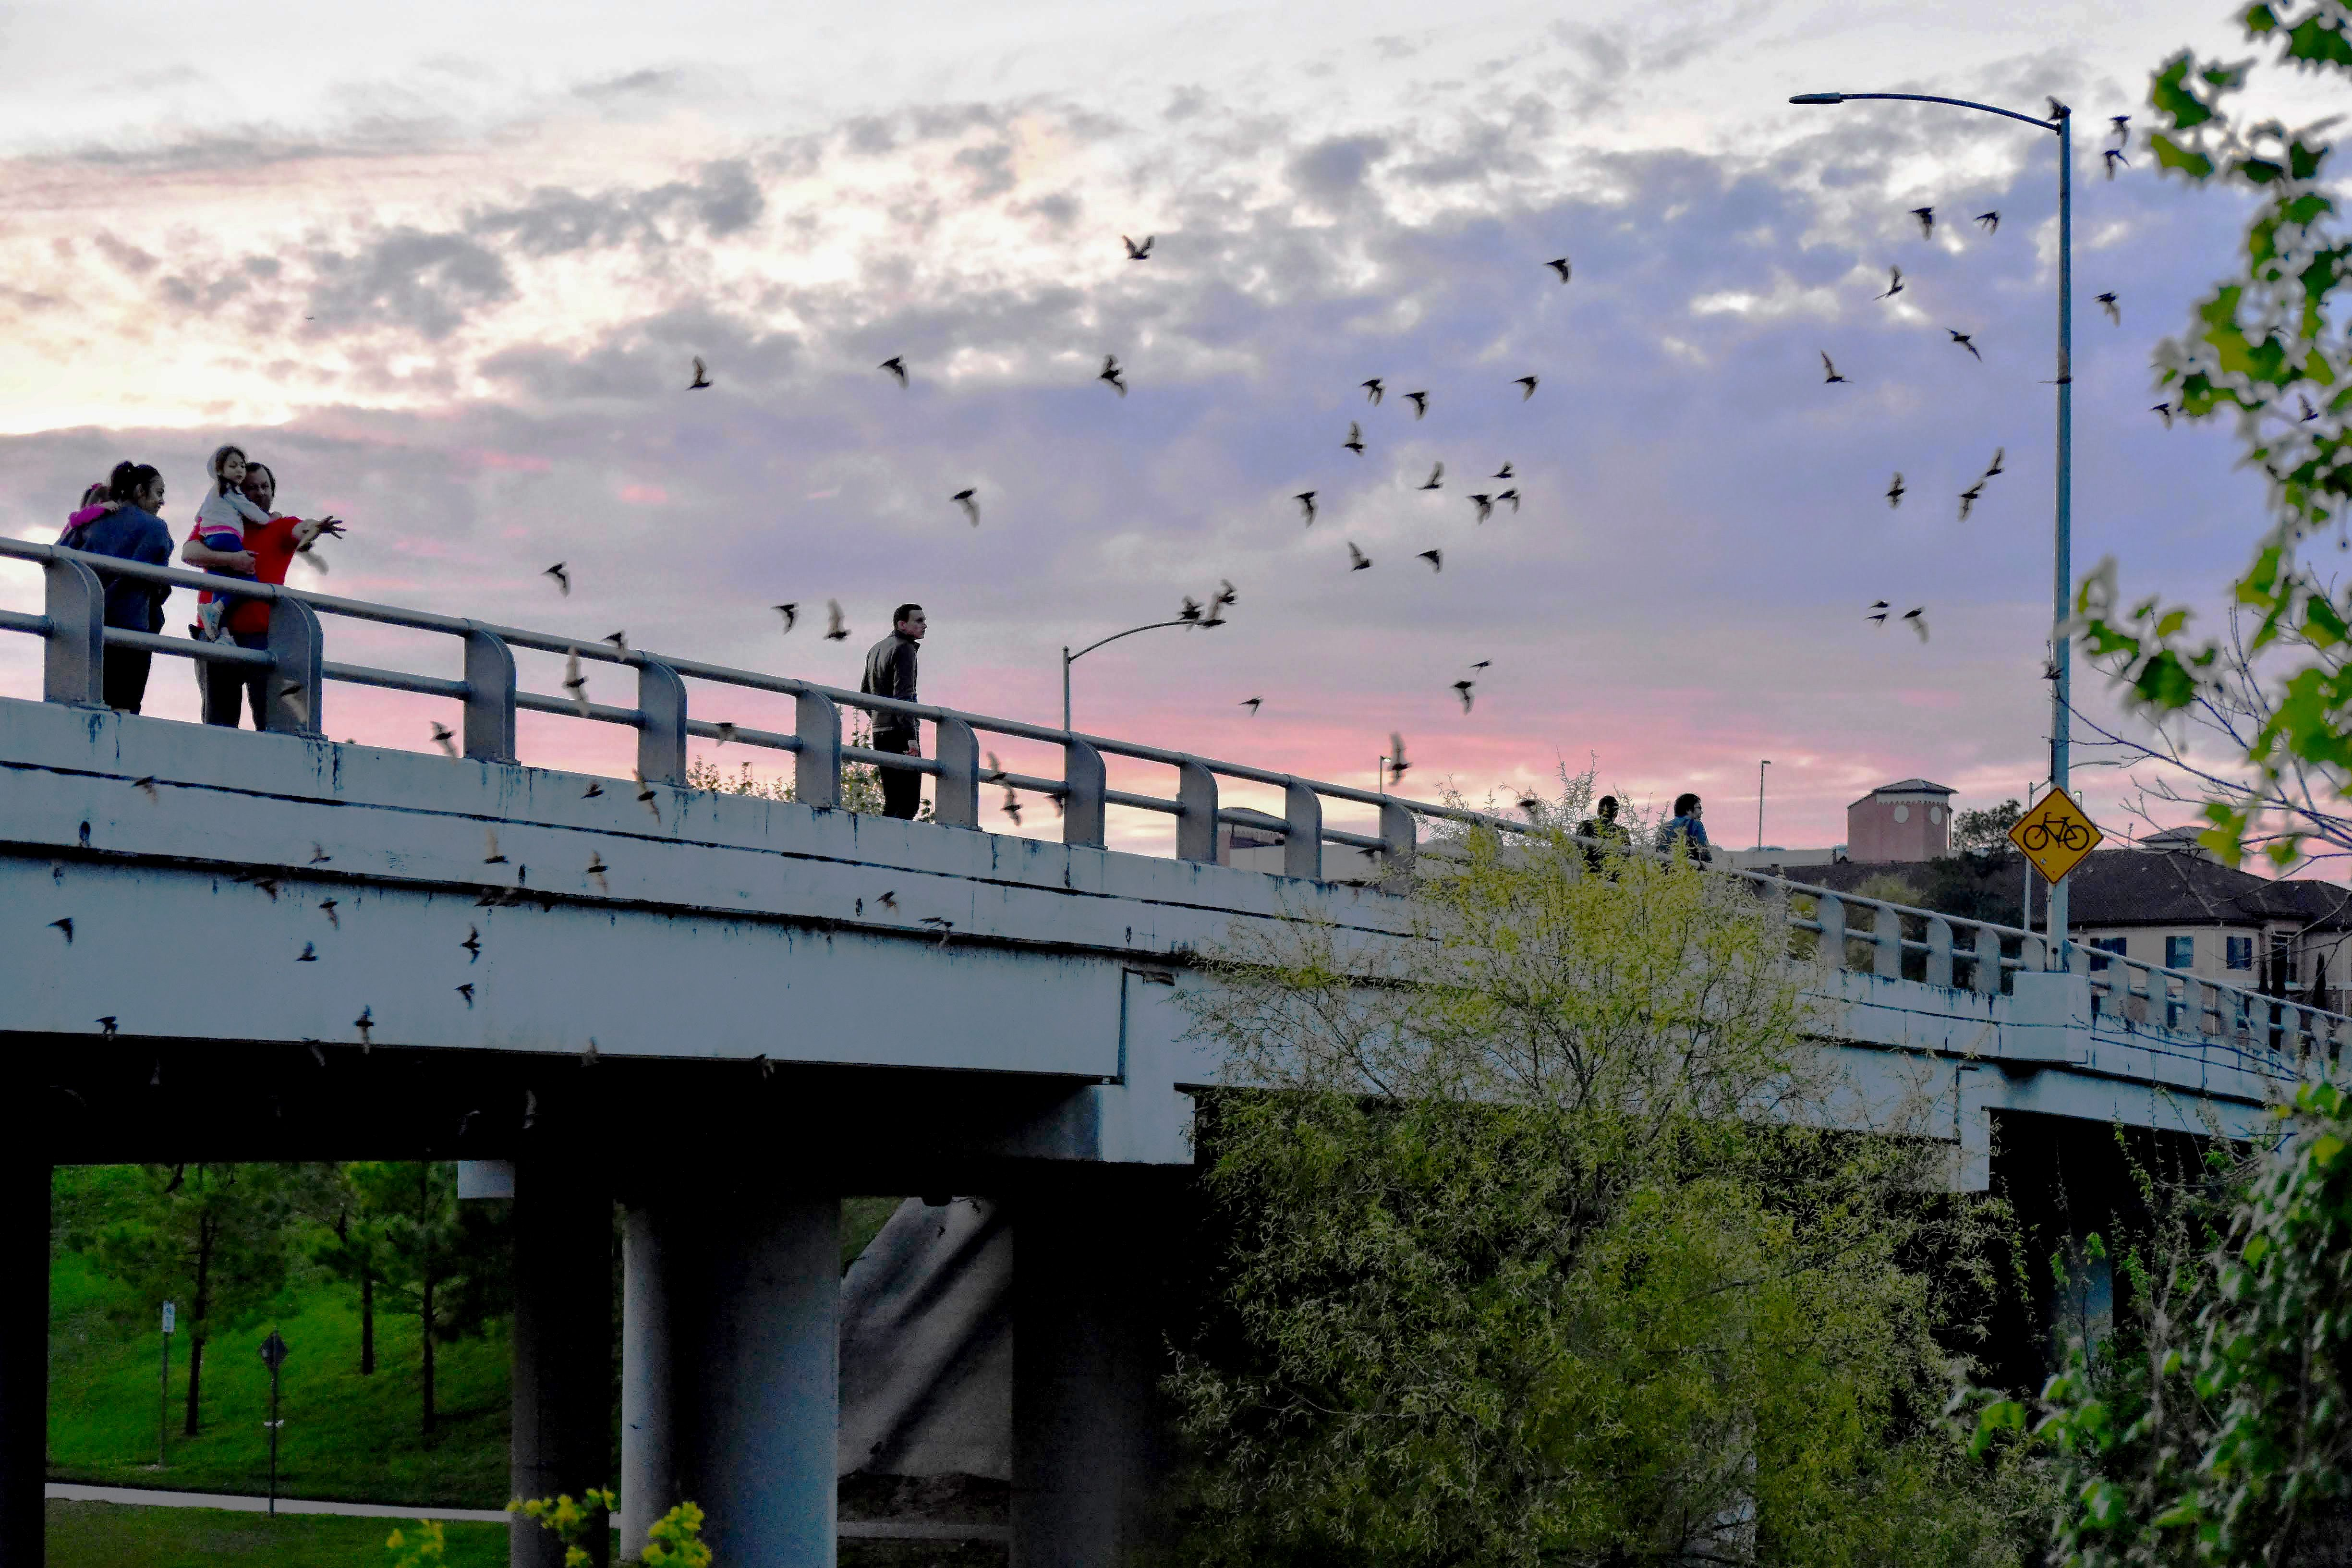 bats flying out from underneath the houston bridge